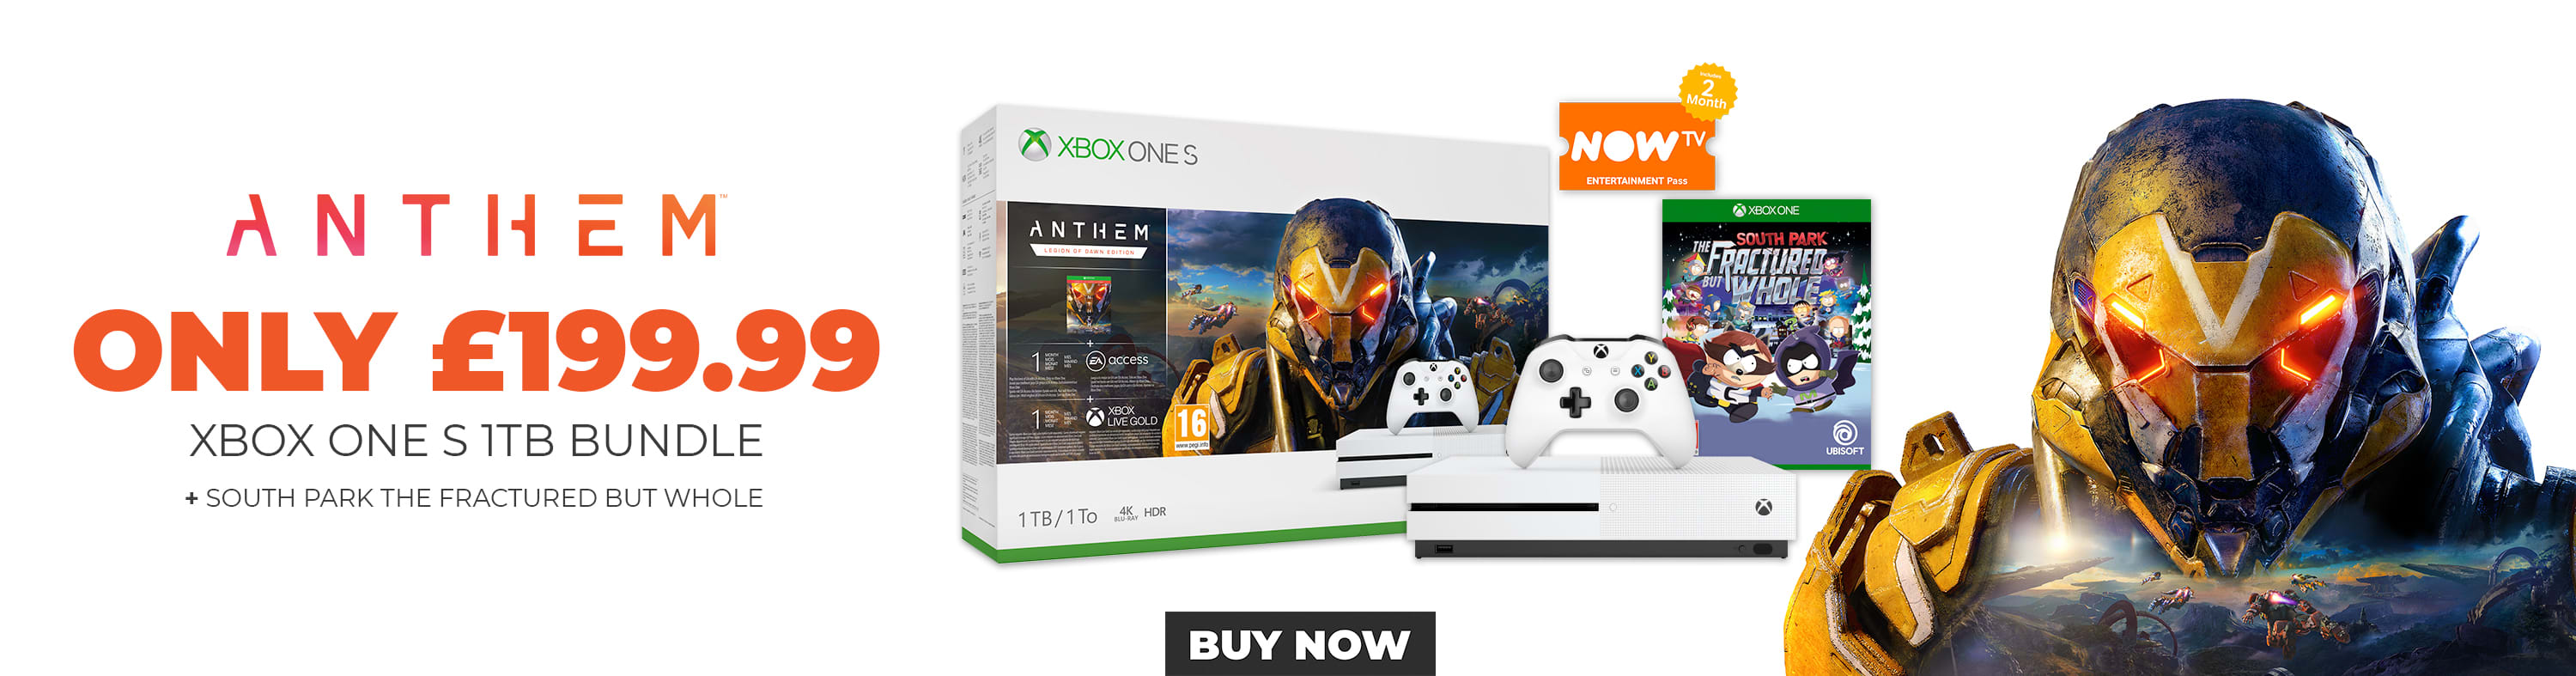 Anthem Xbox One S 1TB Bundles